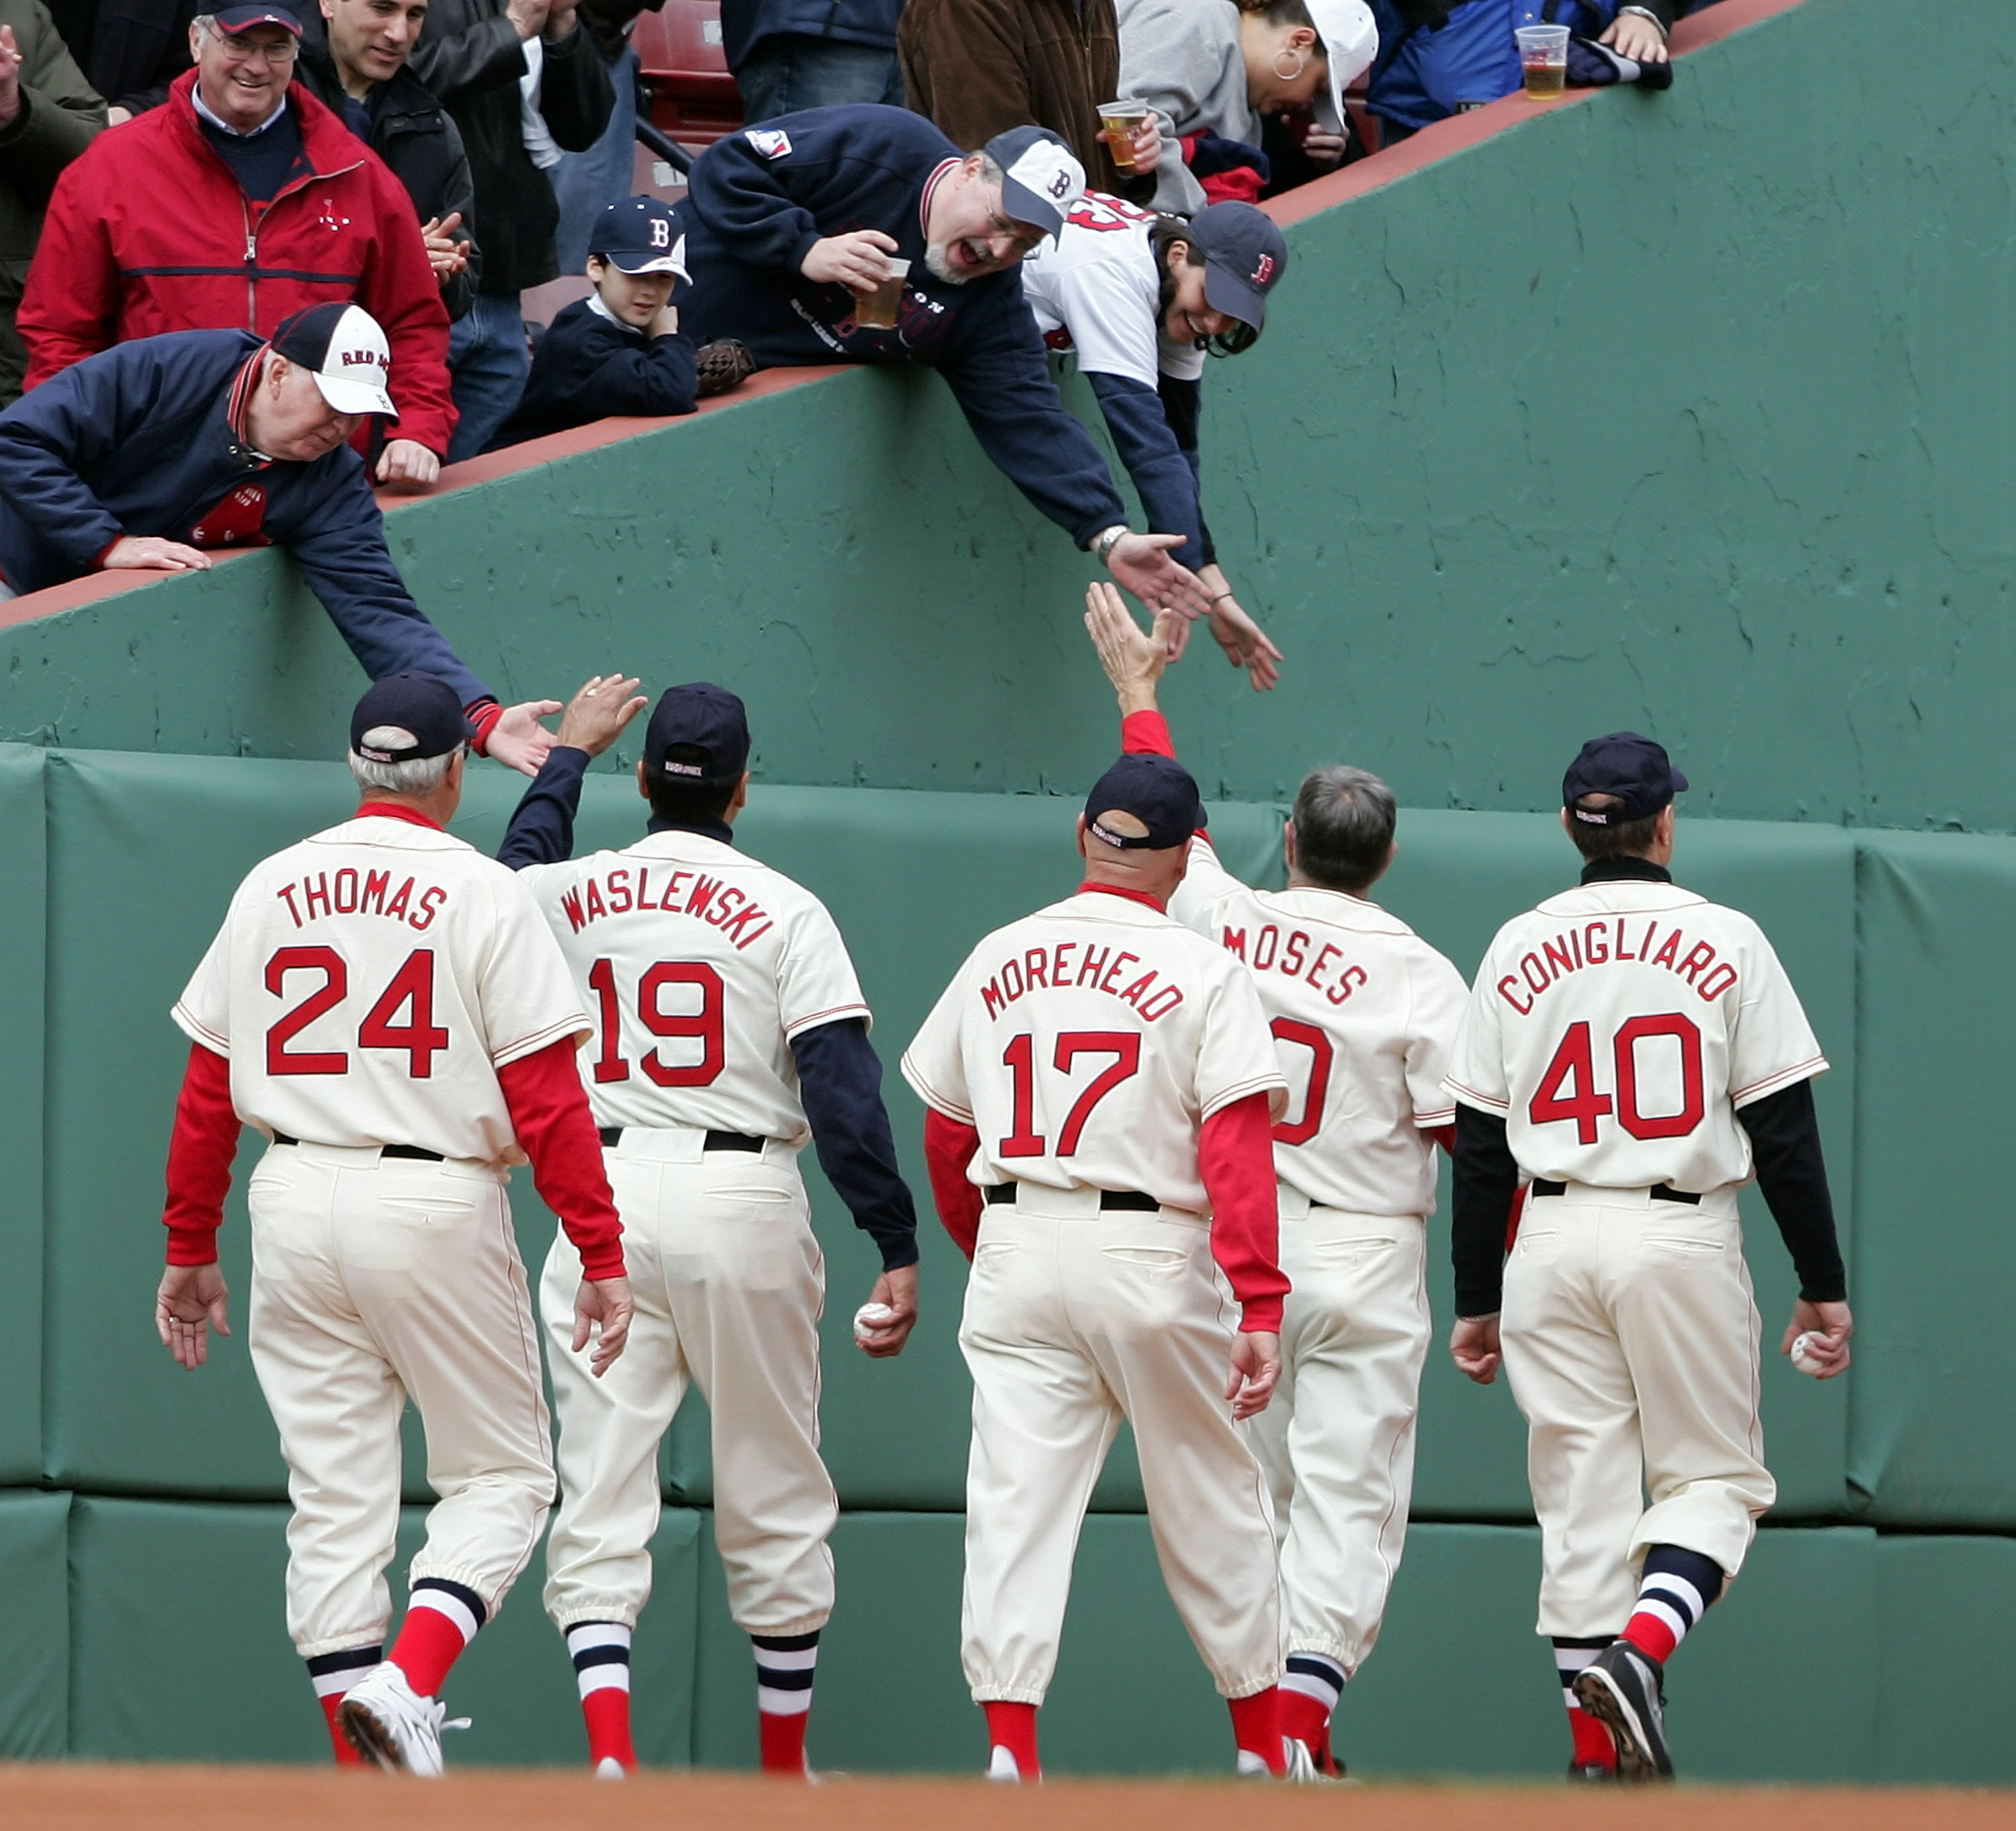 BOSTON - APRIL 10: George Thomas #24, Gary Waslewski #19, Dave Morehead #17, Jerry Moses #10 and Tony Conigliaro #40 of the 1967 Boston Red Sox walk off the field before the 2007 Red Sox were to take on the Seattle Mariners on opening day at Fenway Park o